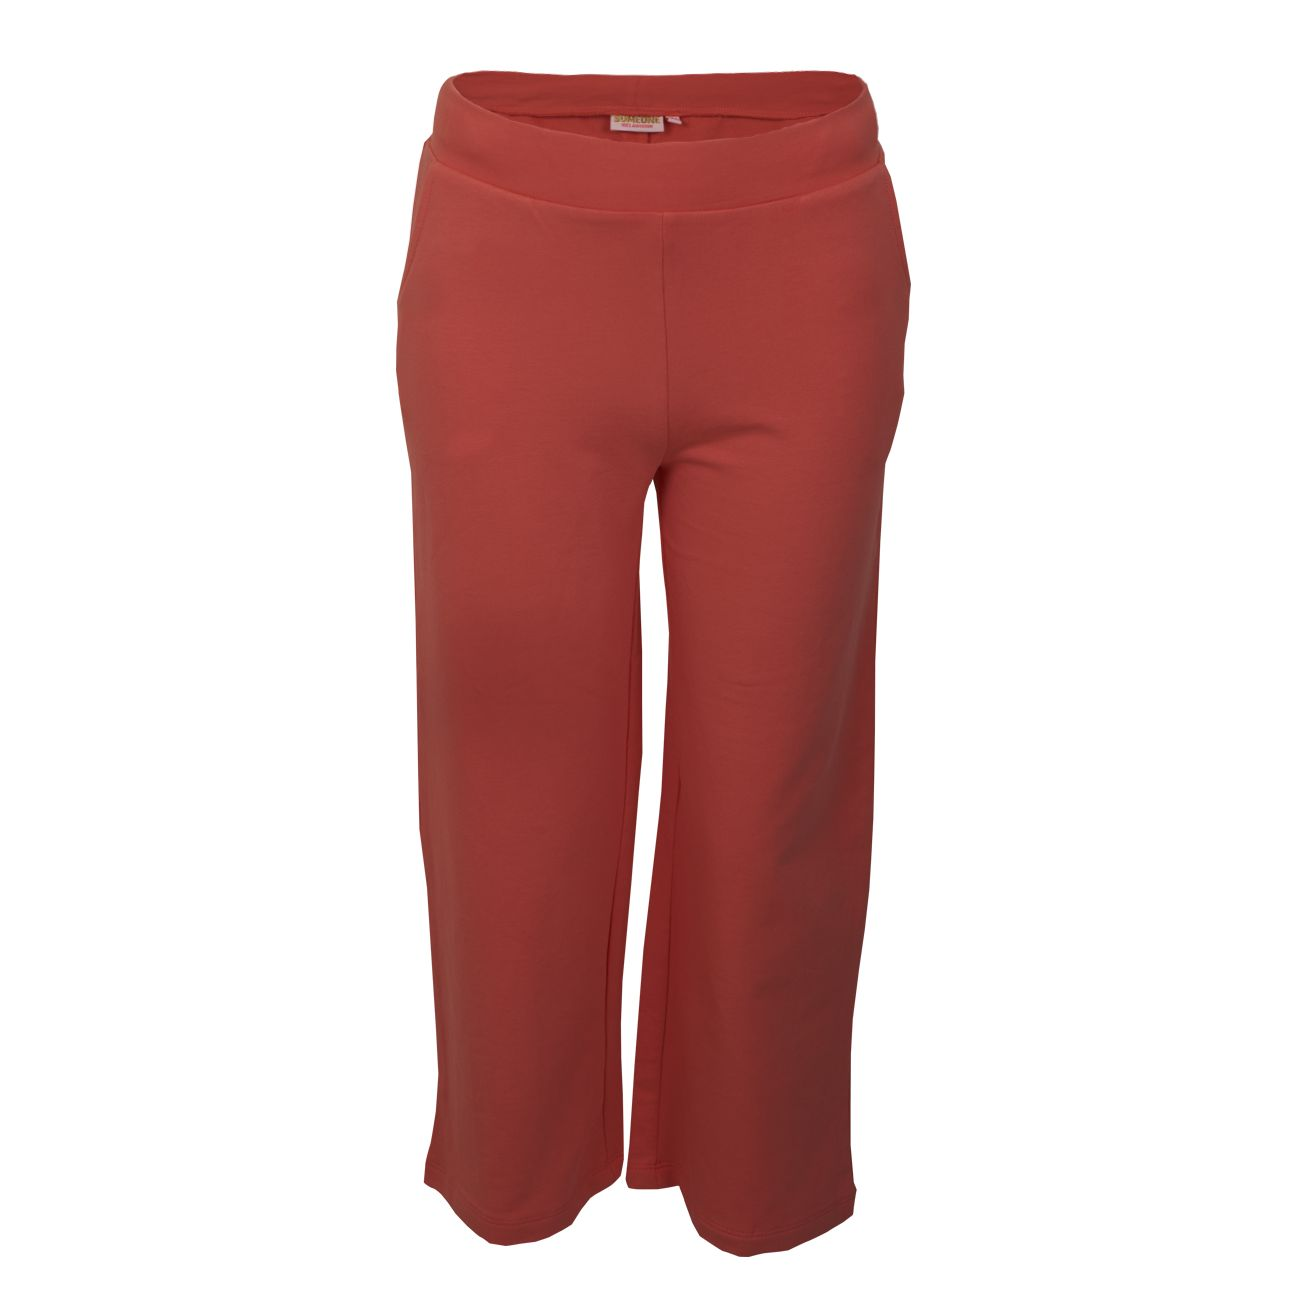 Culotte 140 Coral SOMEONE 100% Awesome